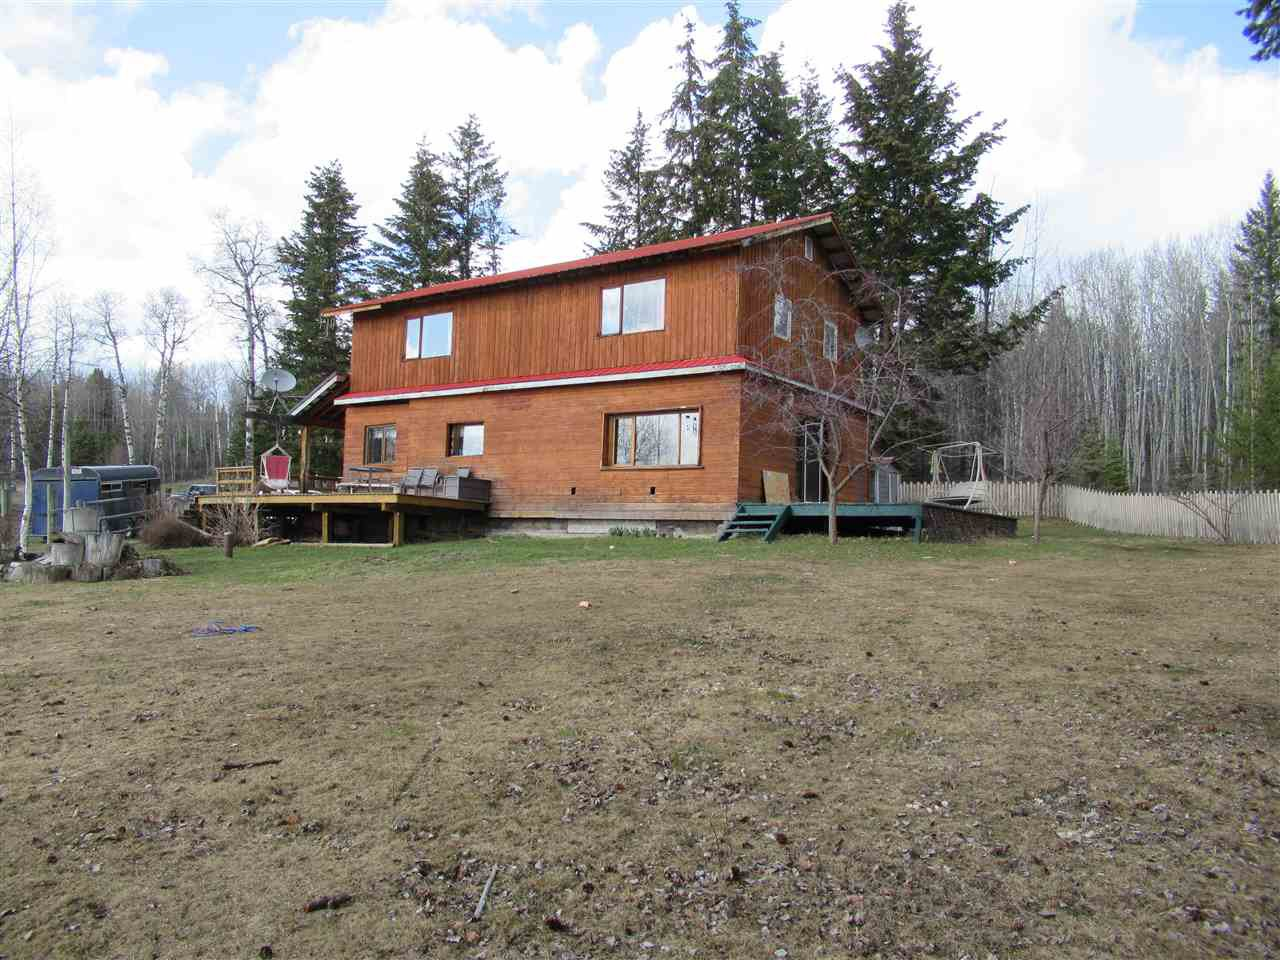 Photo 19: Photos: 3750 PARADISE Drive in Williams Lake: Williams Lake - Rural East House for sale (Williams Lake (Zone 27))  : MLS®# R2350243